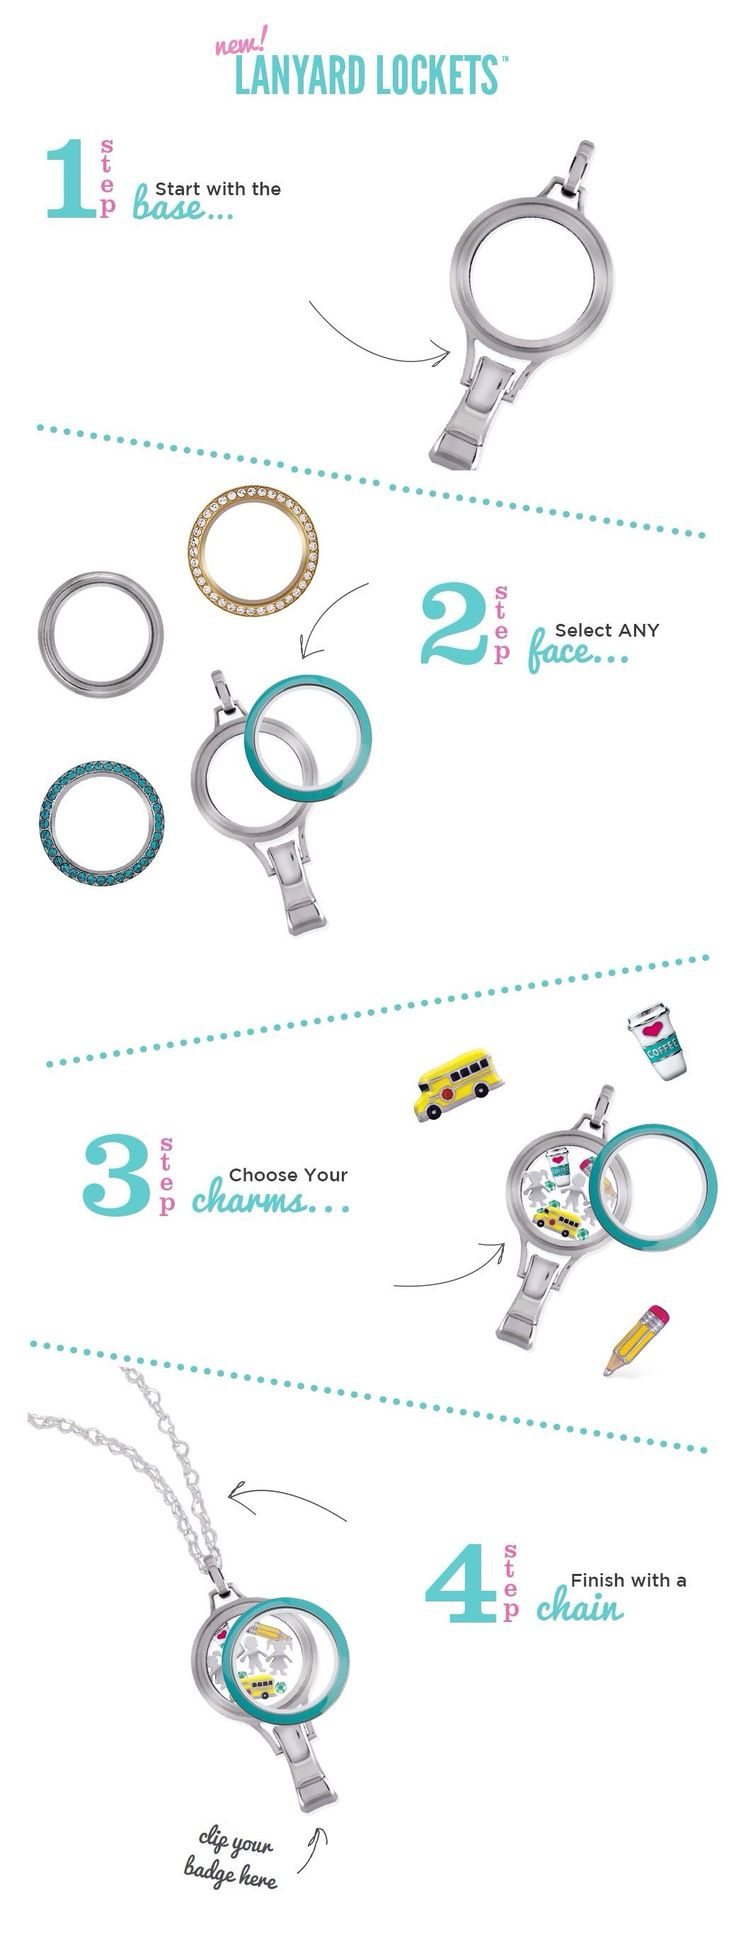 Rock your badge at work with style! New lanyard lockets with exchangeable twist faces! #locketsbycourt www.DazzlingLockets.origamiowl.com